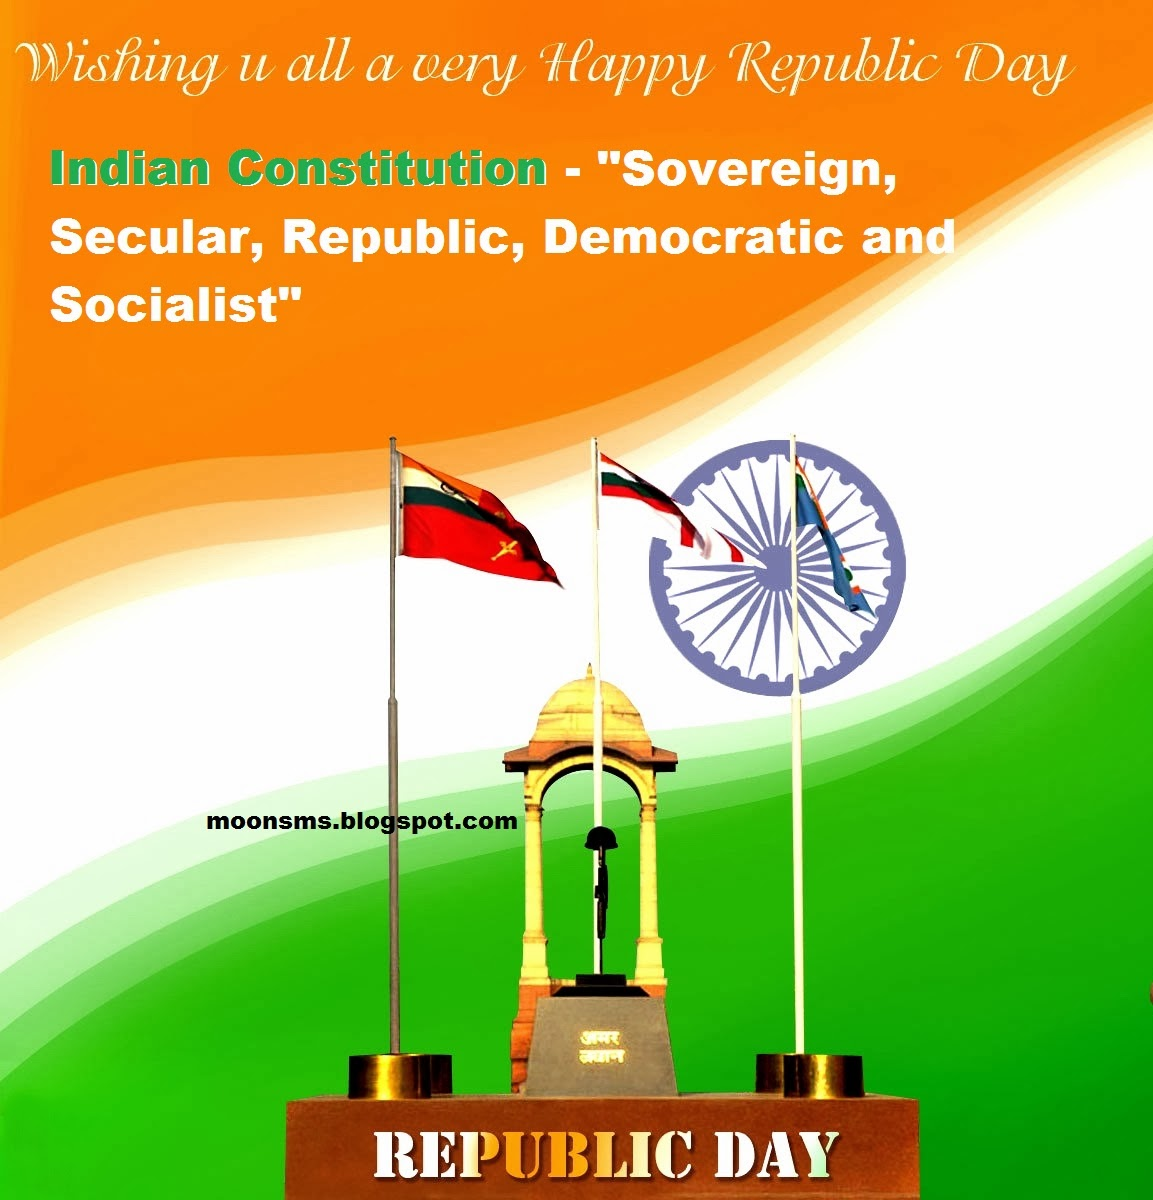 Christian post moonsms happy republic day 2014 happy 26 january happy republic day 2014 happy 26 january india sms text message wishes quotes in english hindi m4hsunfo